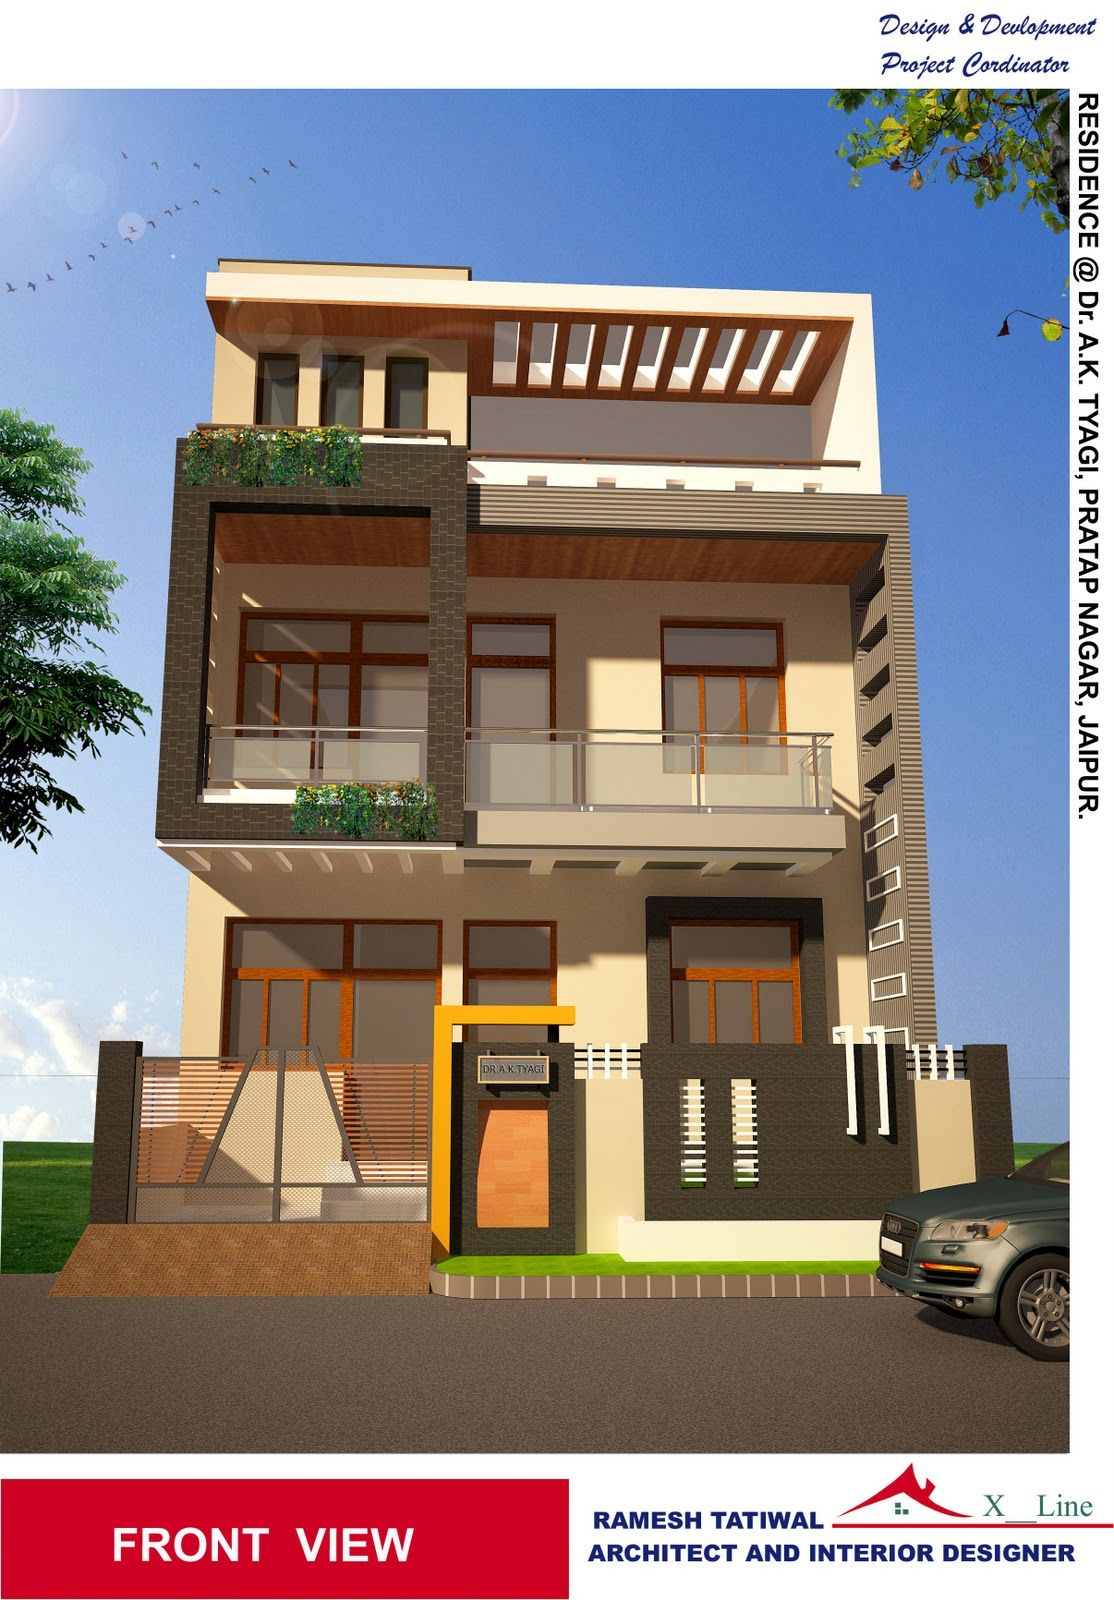 Housedesigns modern indian home architecture design from for Best indian home designs